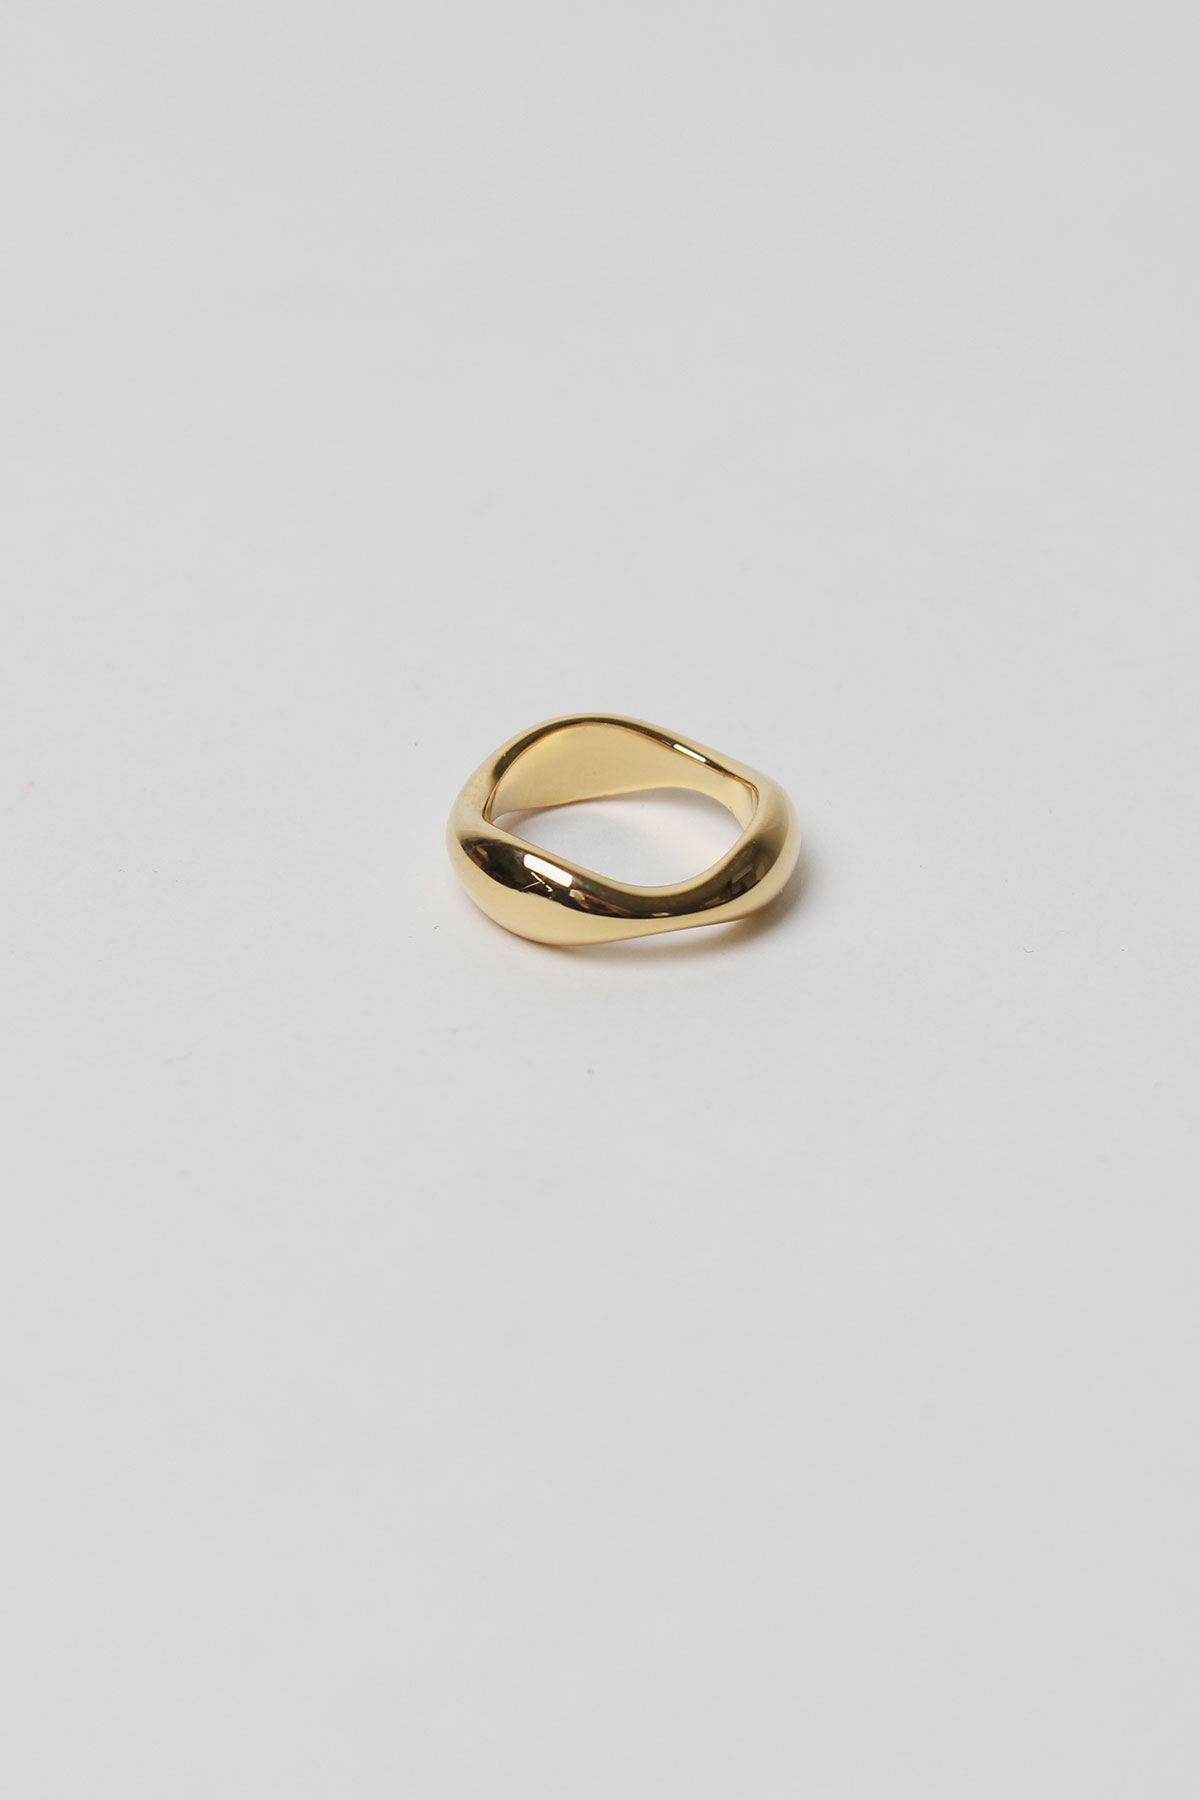 GOLD WAVE RING (925 SILVER)